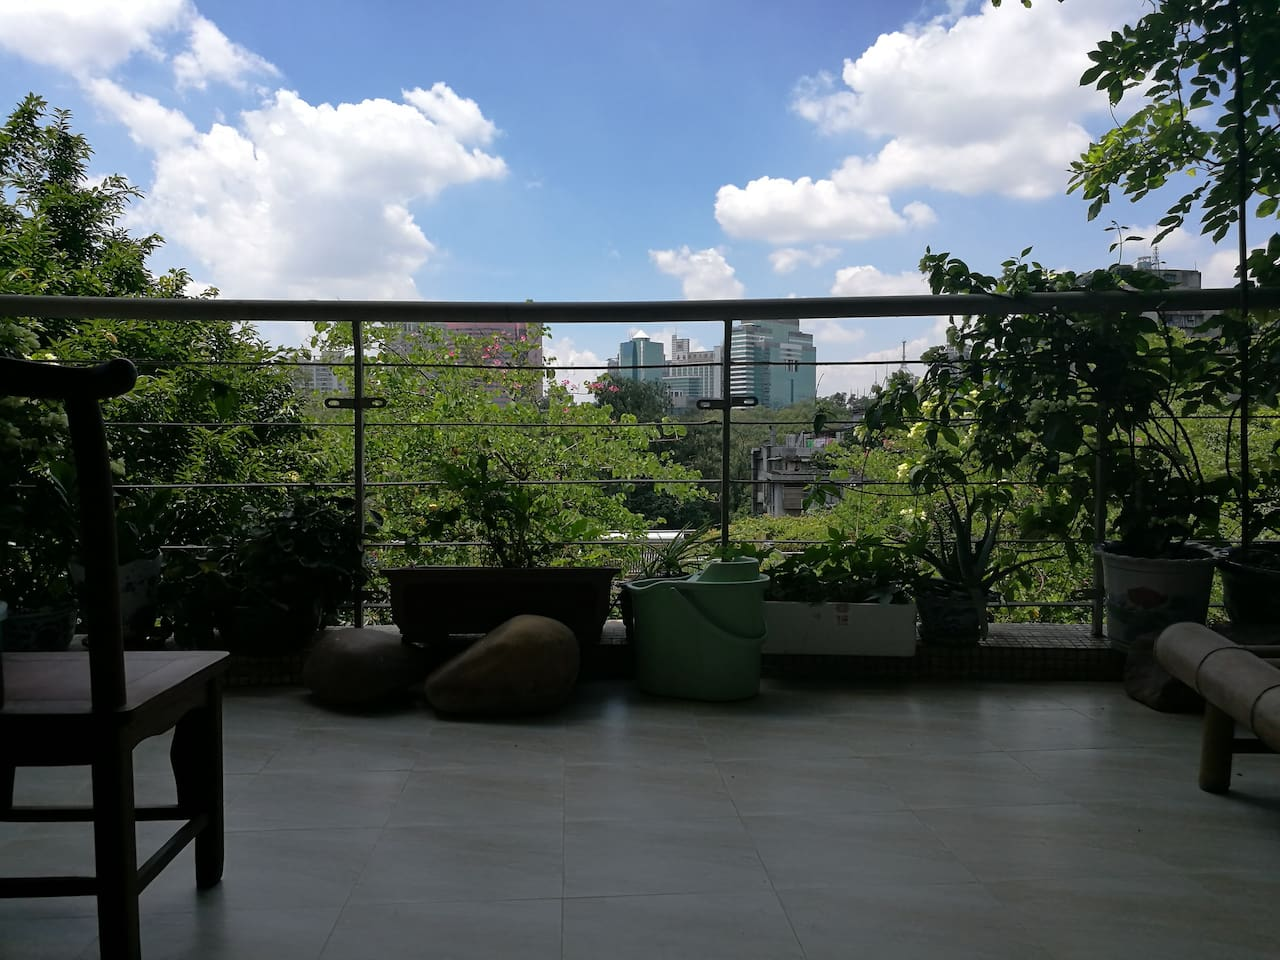 view from my balcony, face to huang hua gang park  我家的阳台观景,南向黄花岗公园